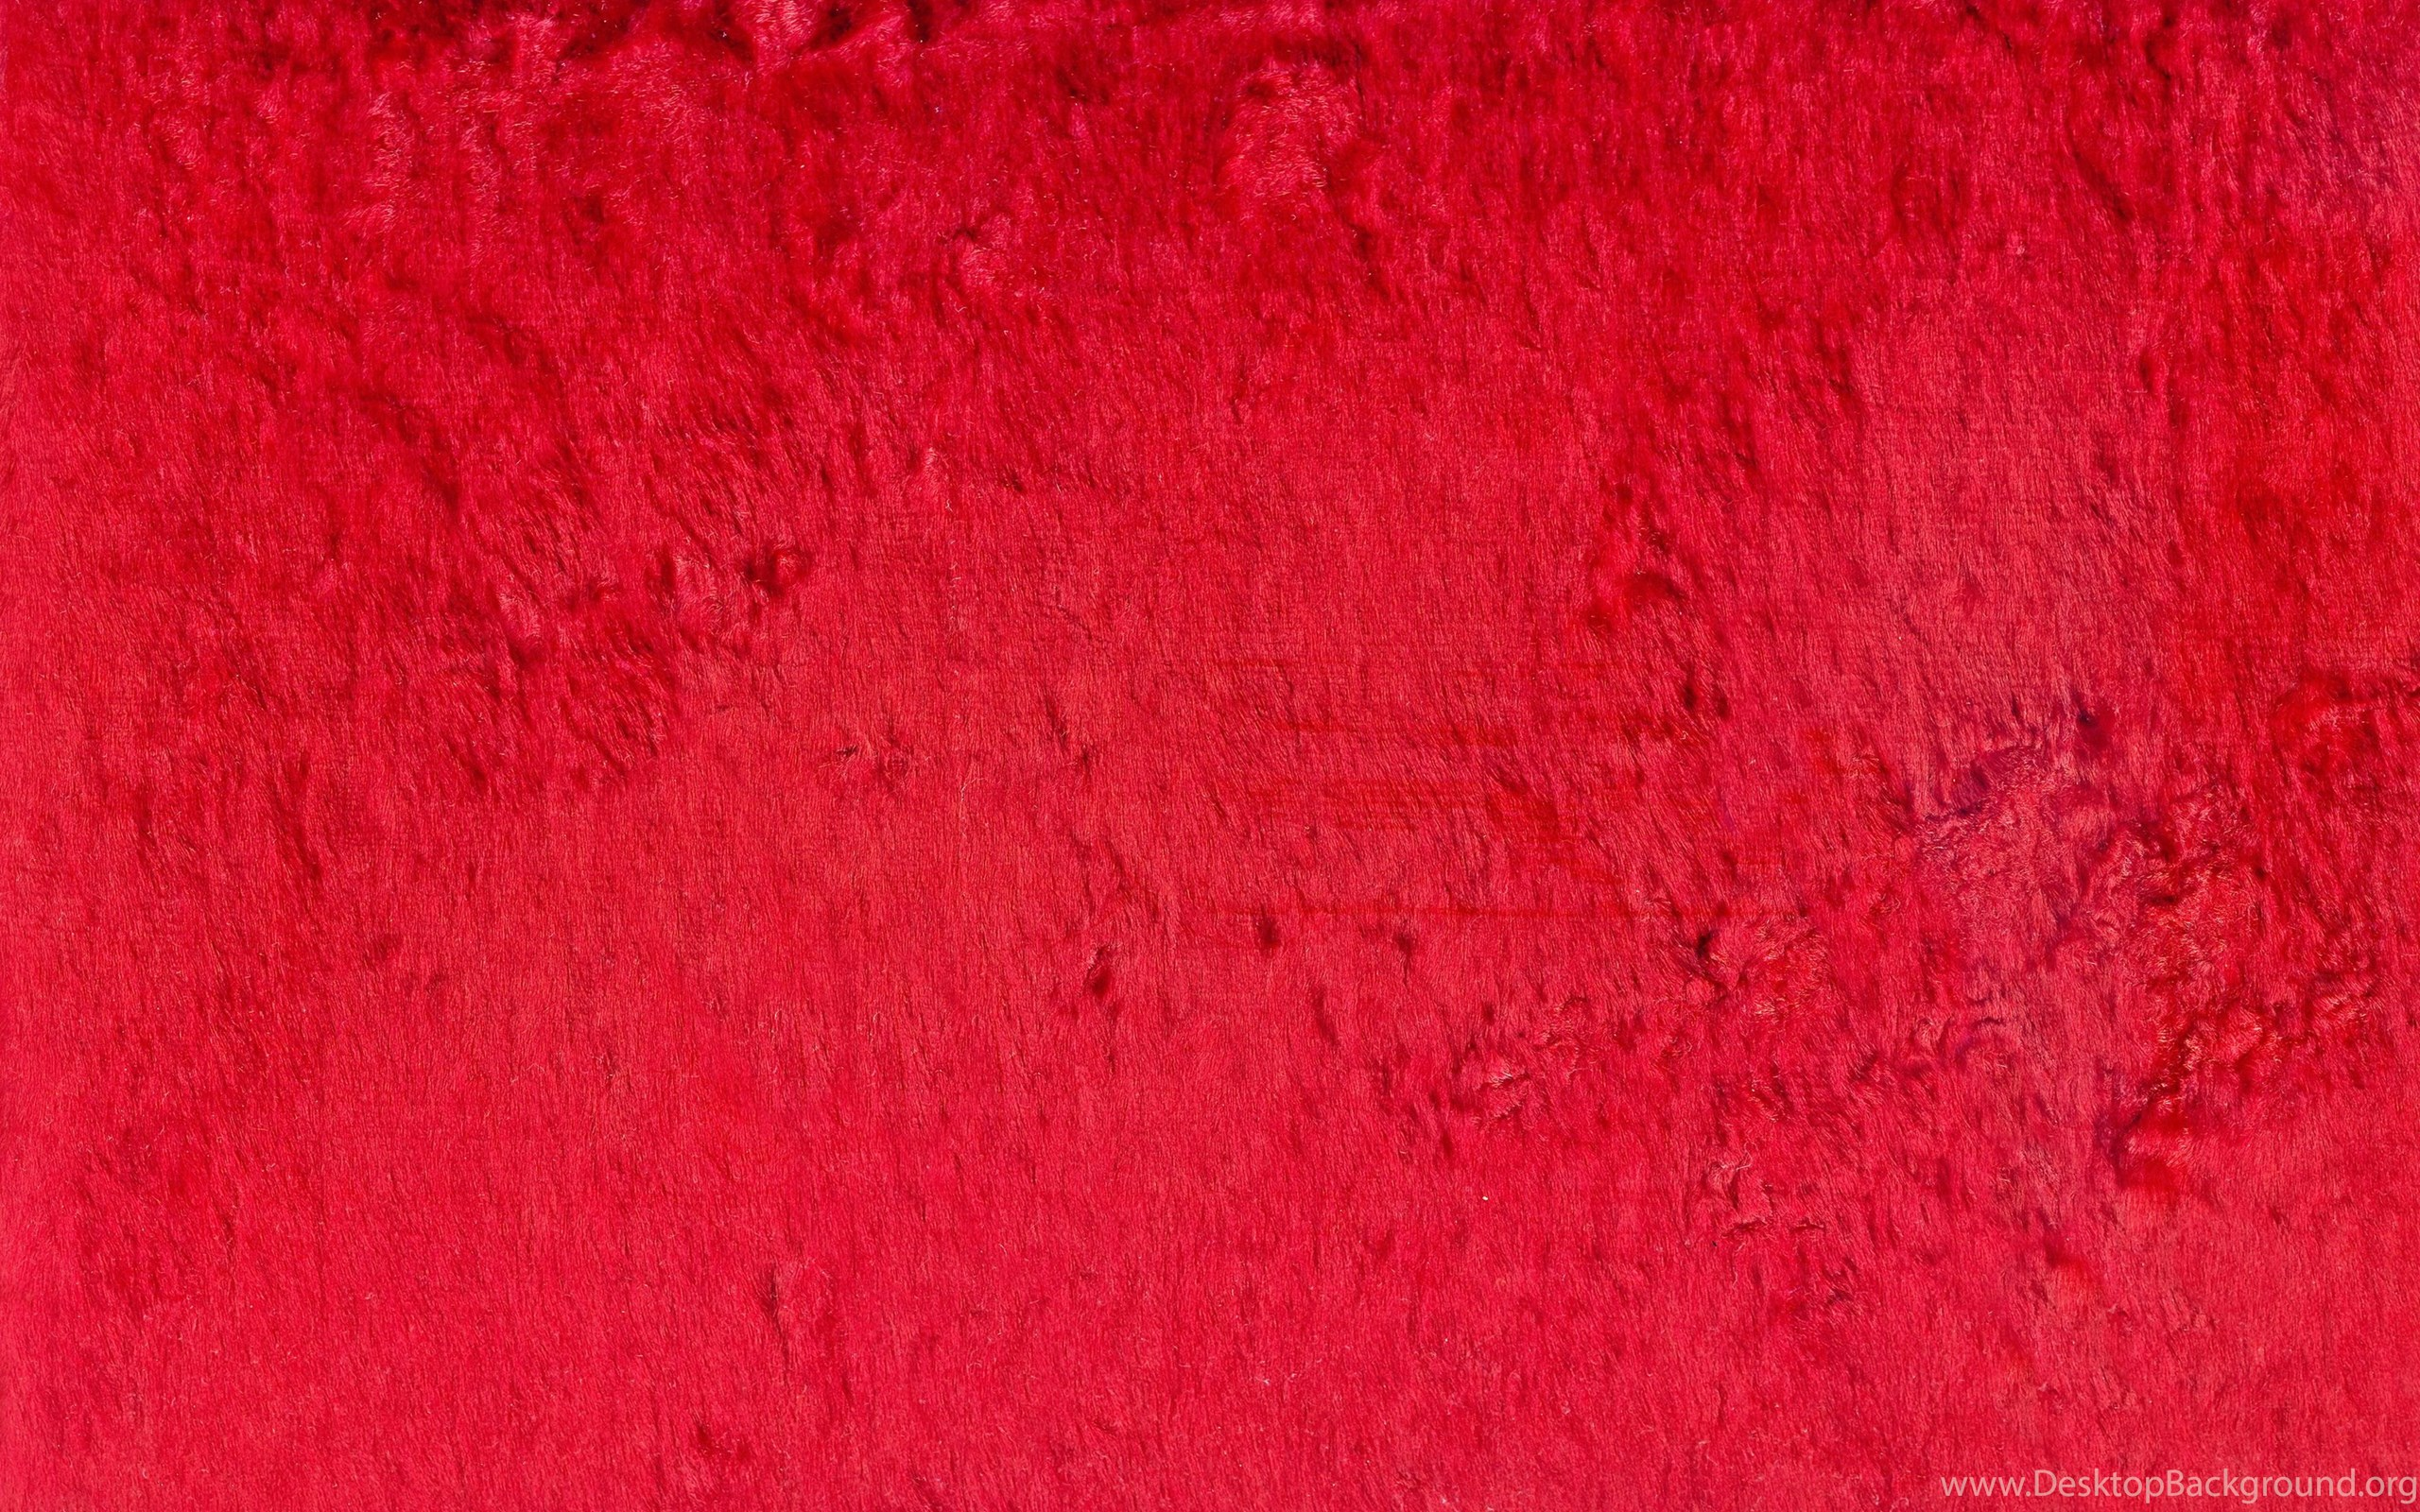 Download Texture Red Velvet Backgrounds Texture Red Velvet